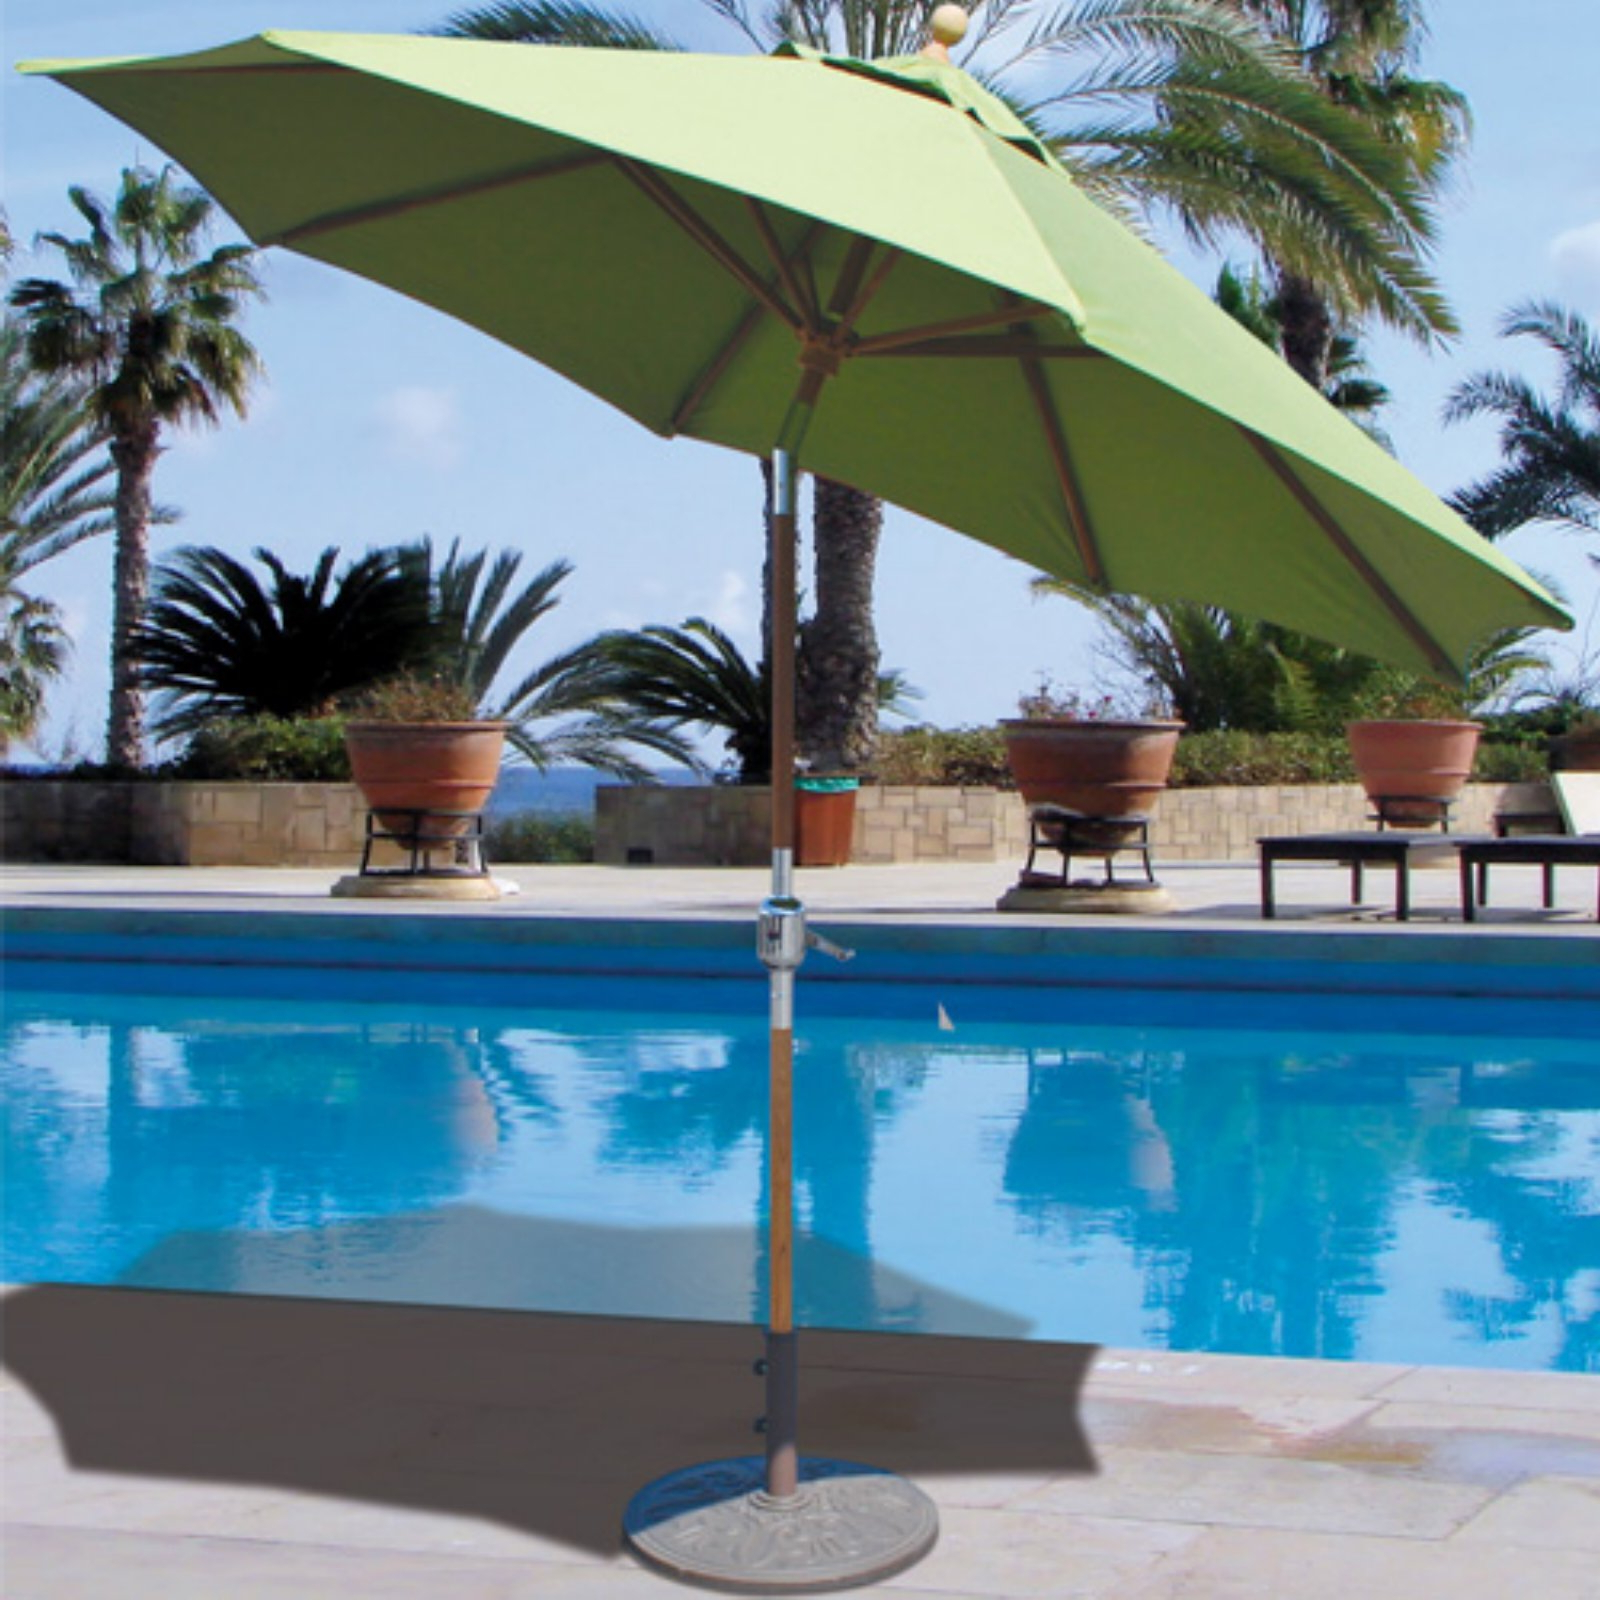 Galtech 9 Ft. Teak Wood Suncrylic Patio Umbrella With Crank Lift And With Regard To Current Schroeder Heavy Duty Beach Umbrellas (Gallery 17 of 20)